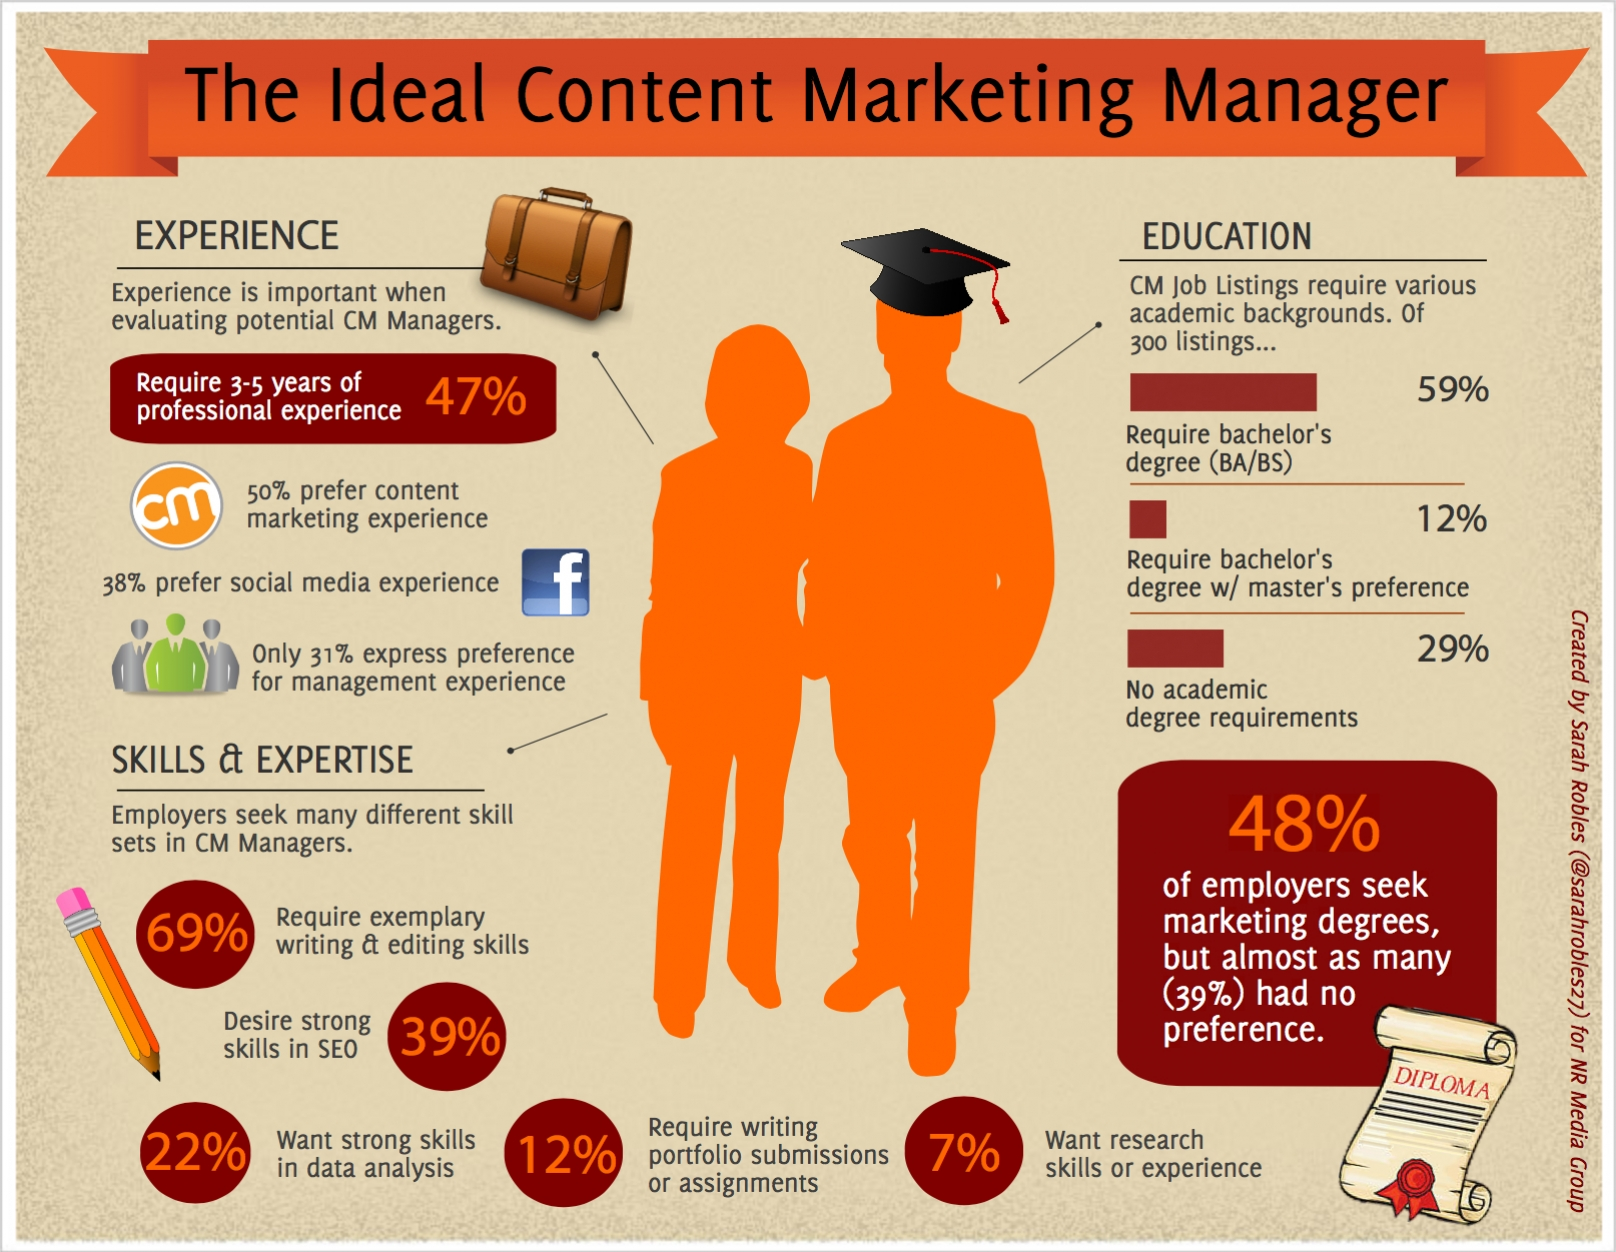 who is the ideal content marketing manager ideal content marketing manager